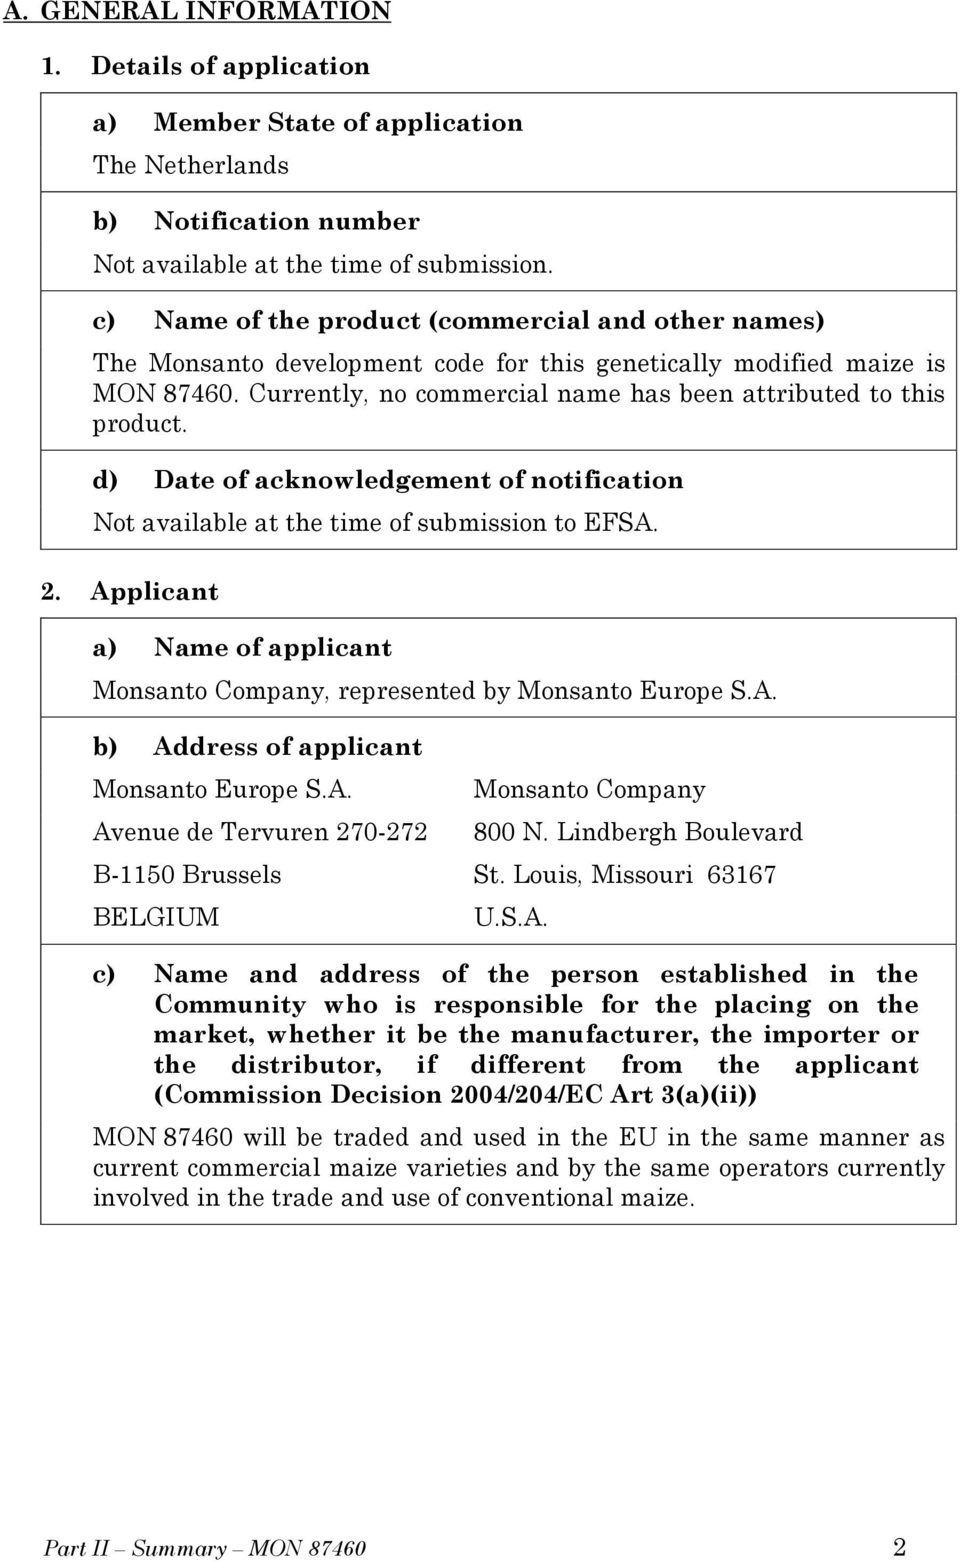 d) Date of acknowledgement of notification Not available at the time of submission to EFSA. 2. Applicant a) Name of applicant Monsanto Company, represented by Monsanto Europe S.A. b) Address of applicant Monsanto Europe S.